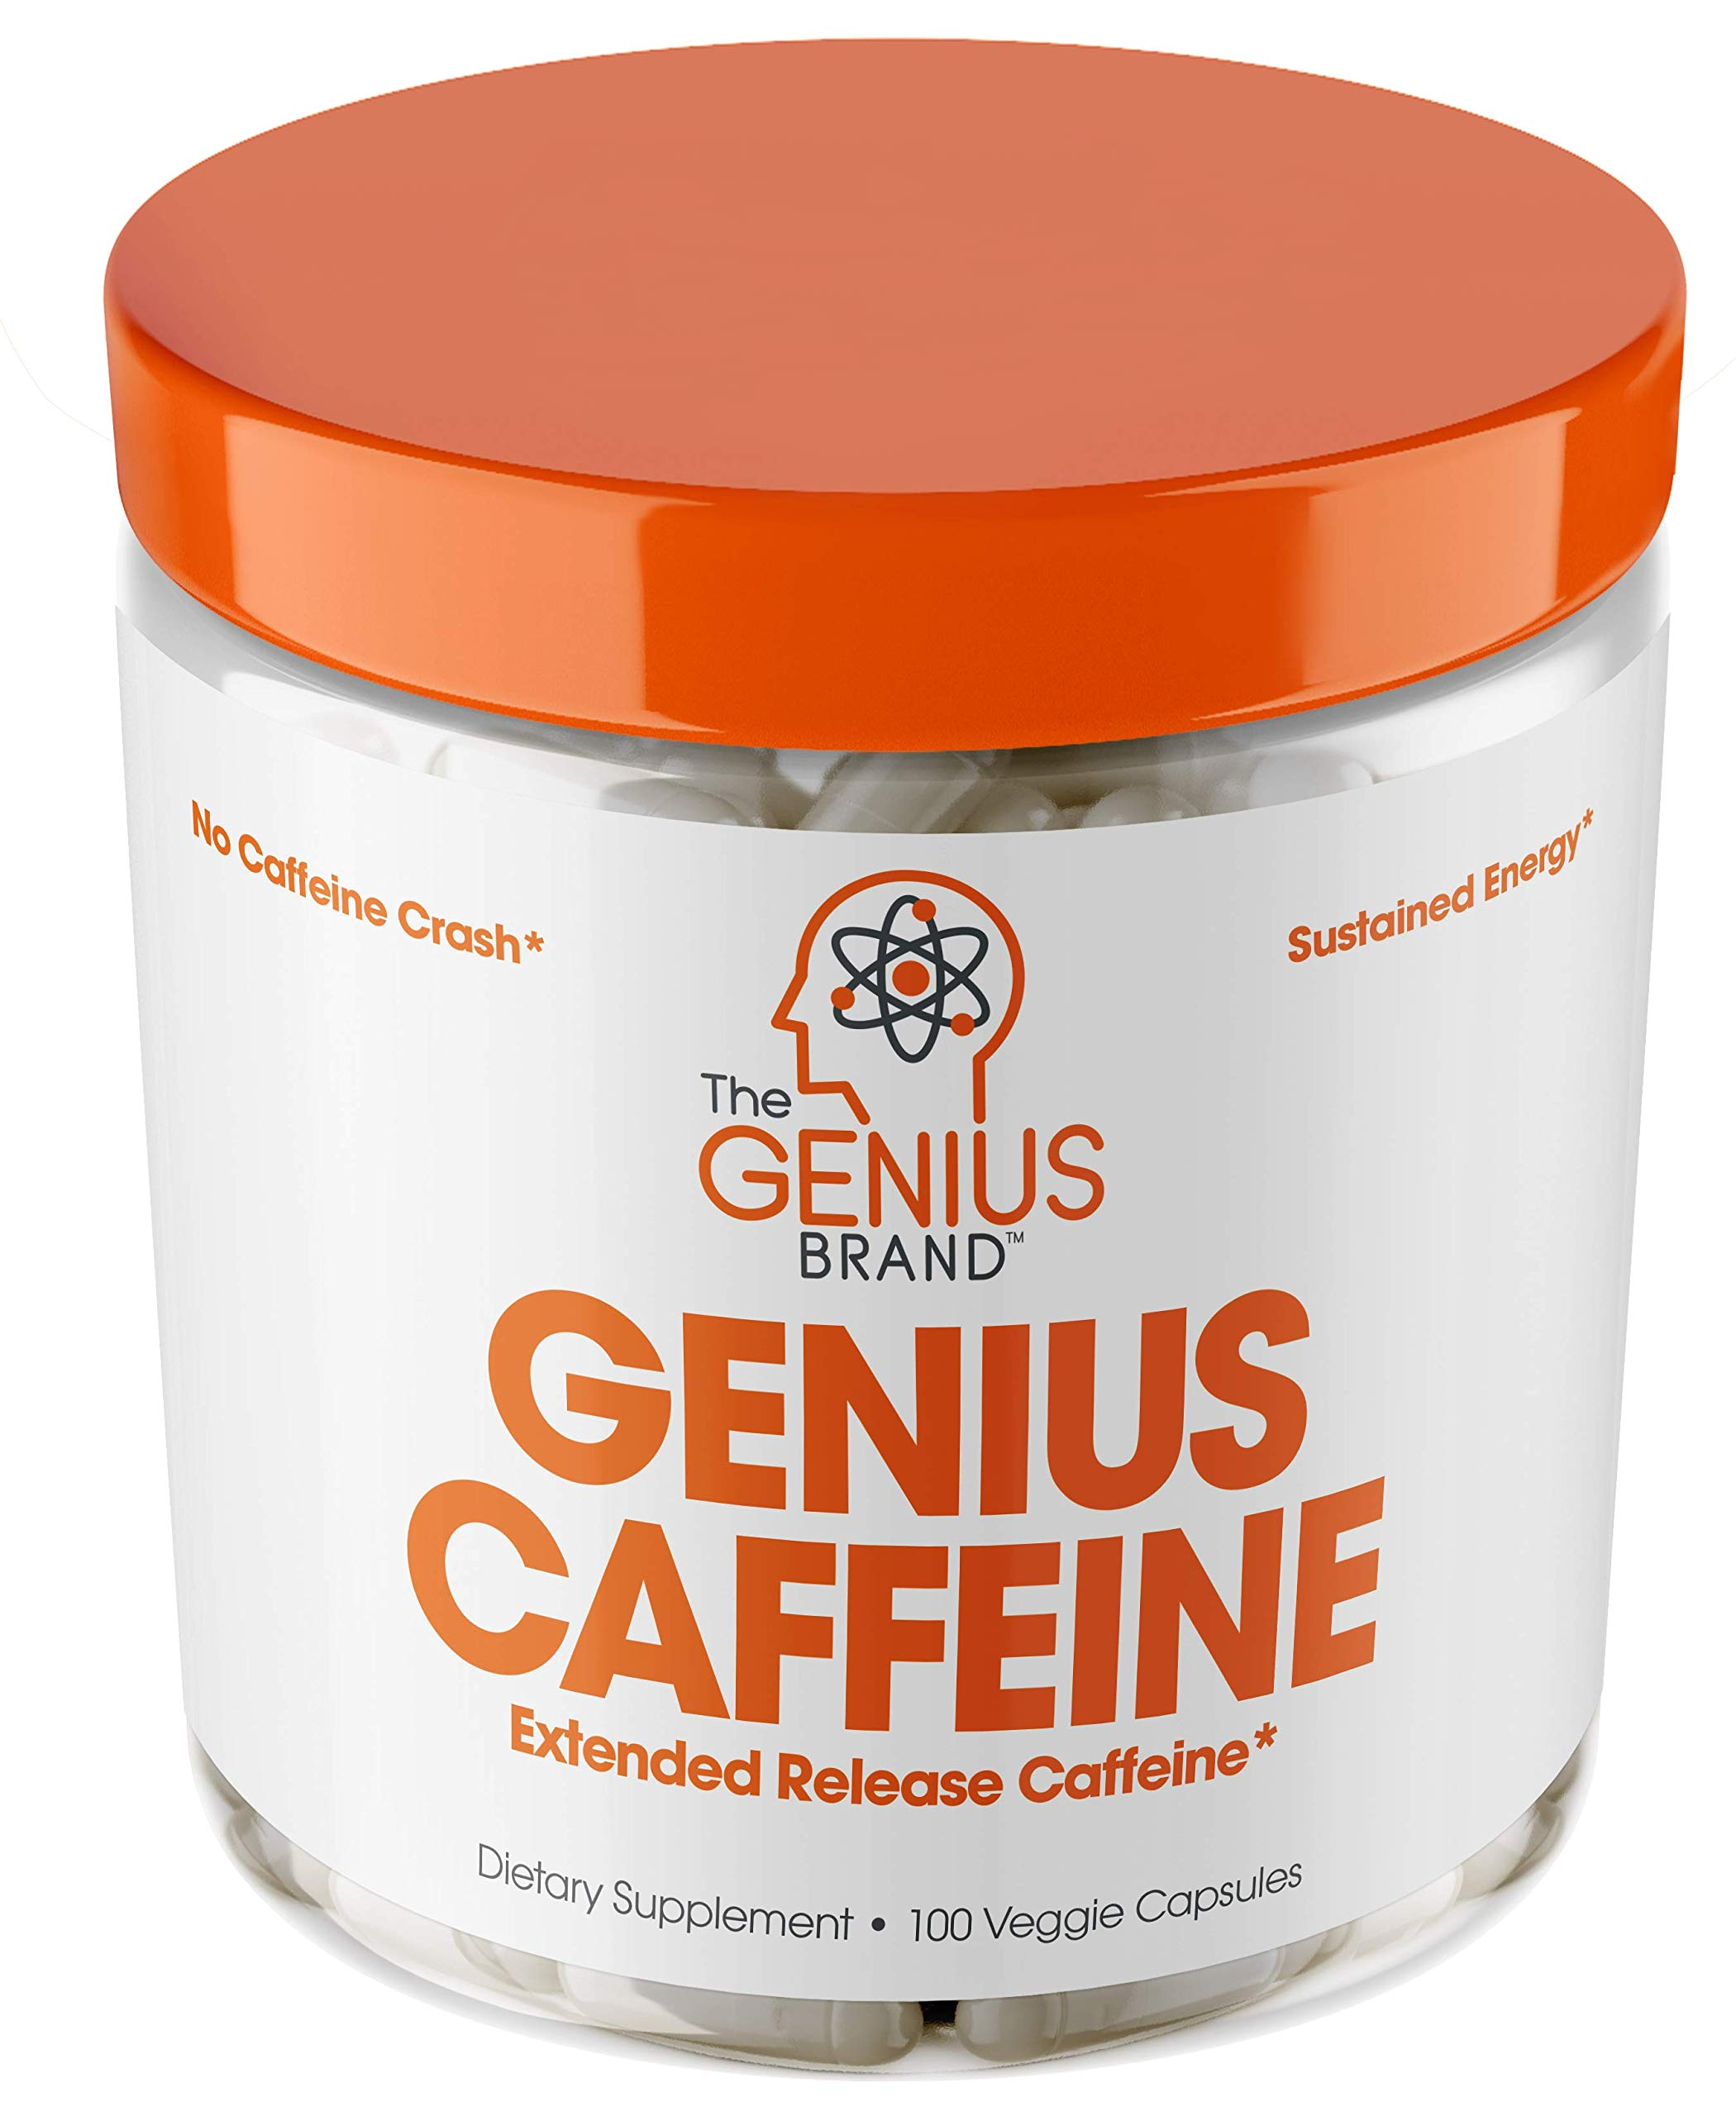 Genius Caffeine - Extended Release Microencapsulated Caffeine Pills, All Natural Non-Crash Sustained Energy & Focus Supplement -Preworkout & Nootropic Brain Booster For Men & Women,100 veggie capsules by The Genius Brand